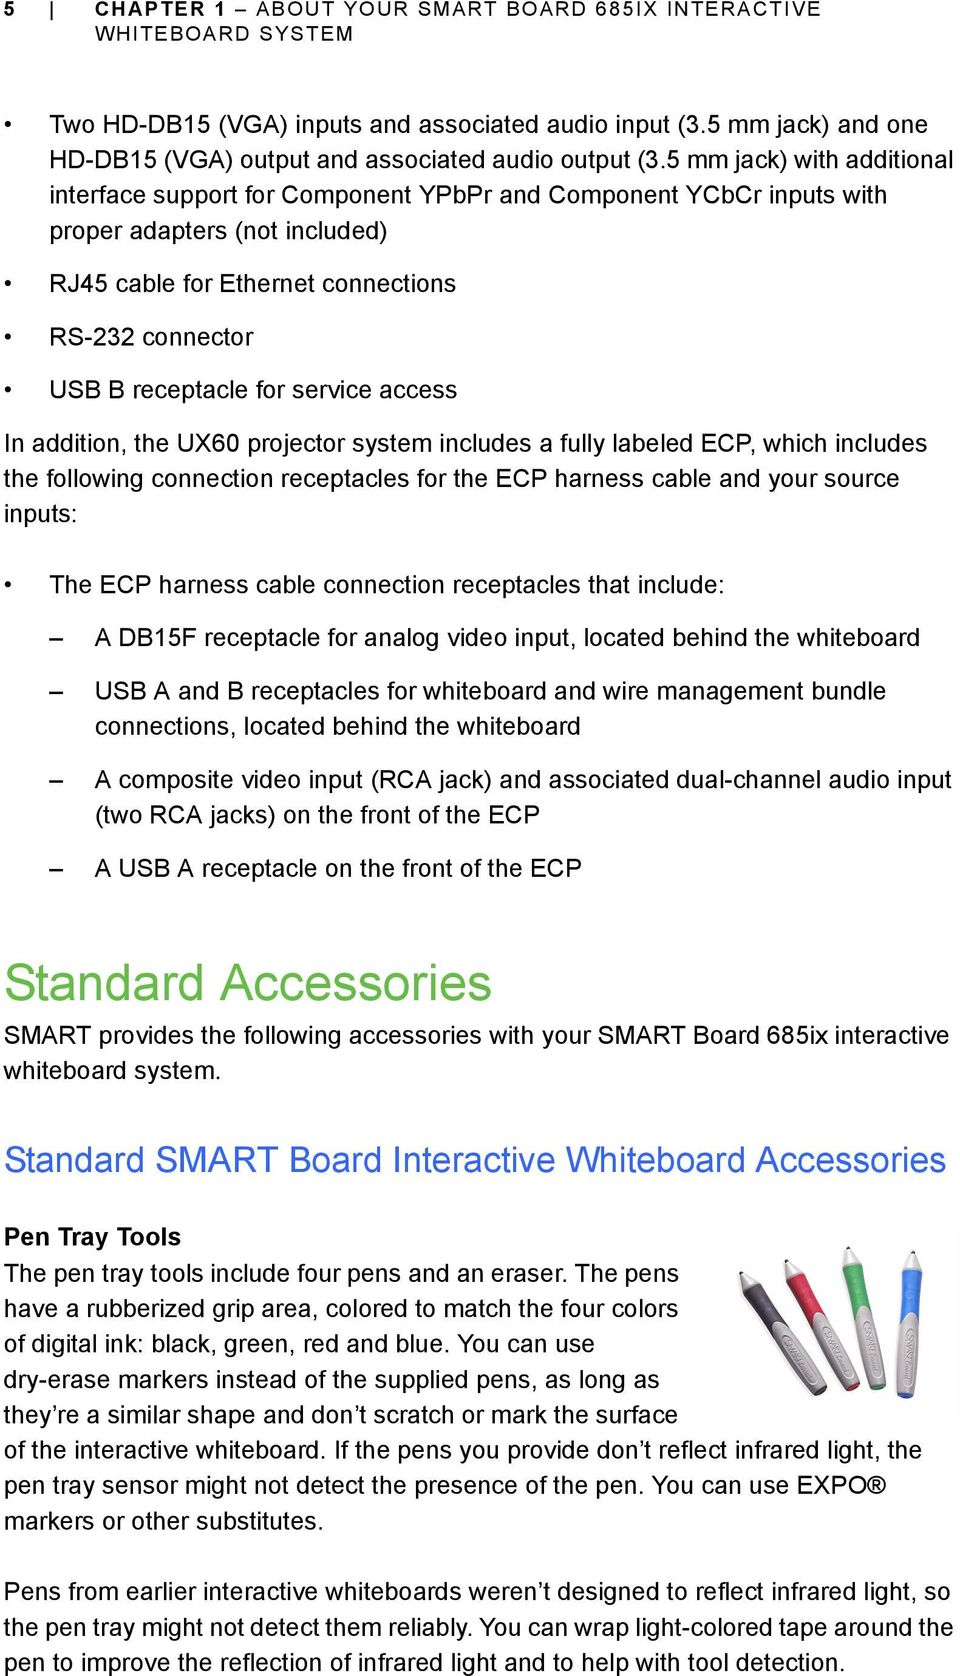 Smart Board 685ix Interactive Whiteboard System Configuration And Wiring Diagram Composite Video Cable To 15hd S For Service Access In Addition The Ux60 Projector Includes A Fully Labeled Ecp